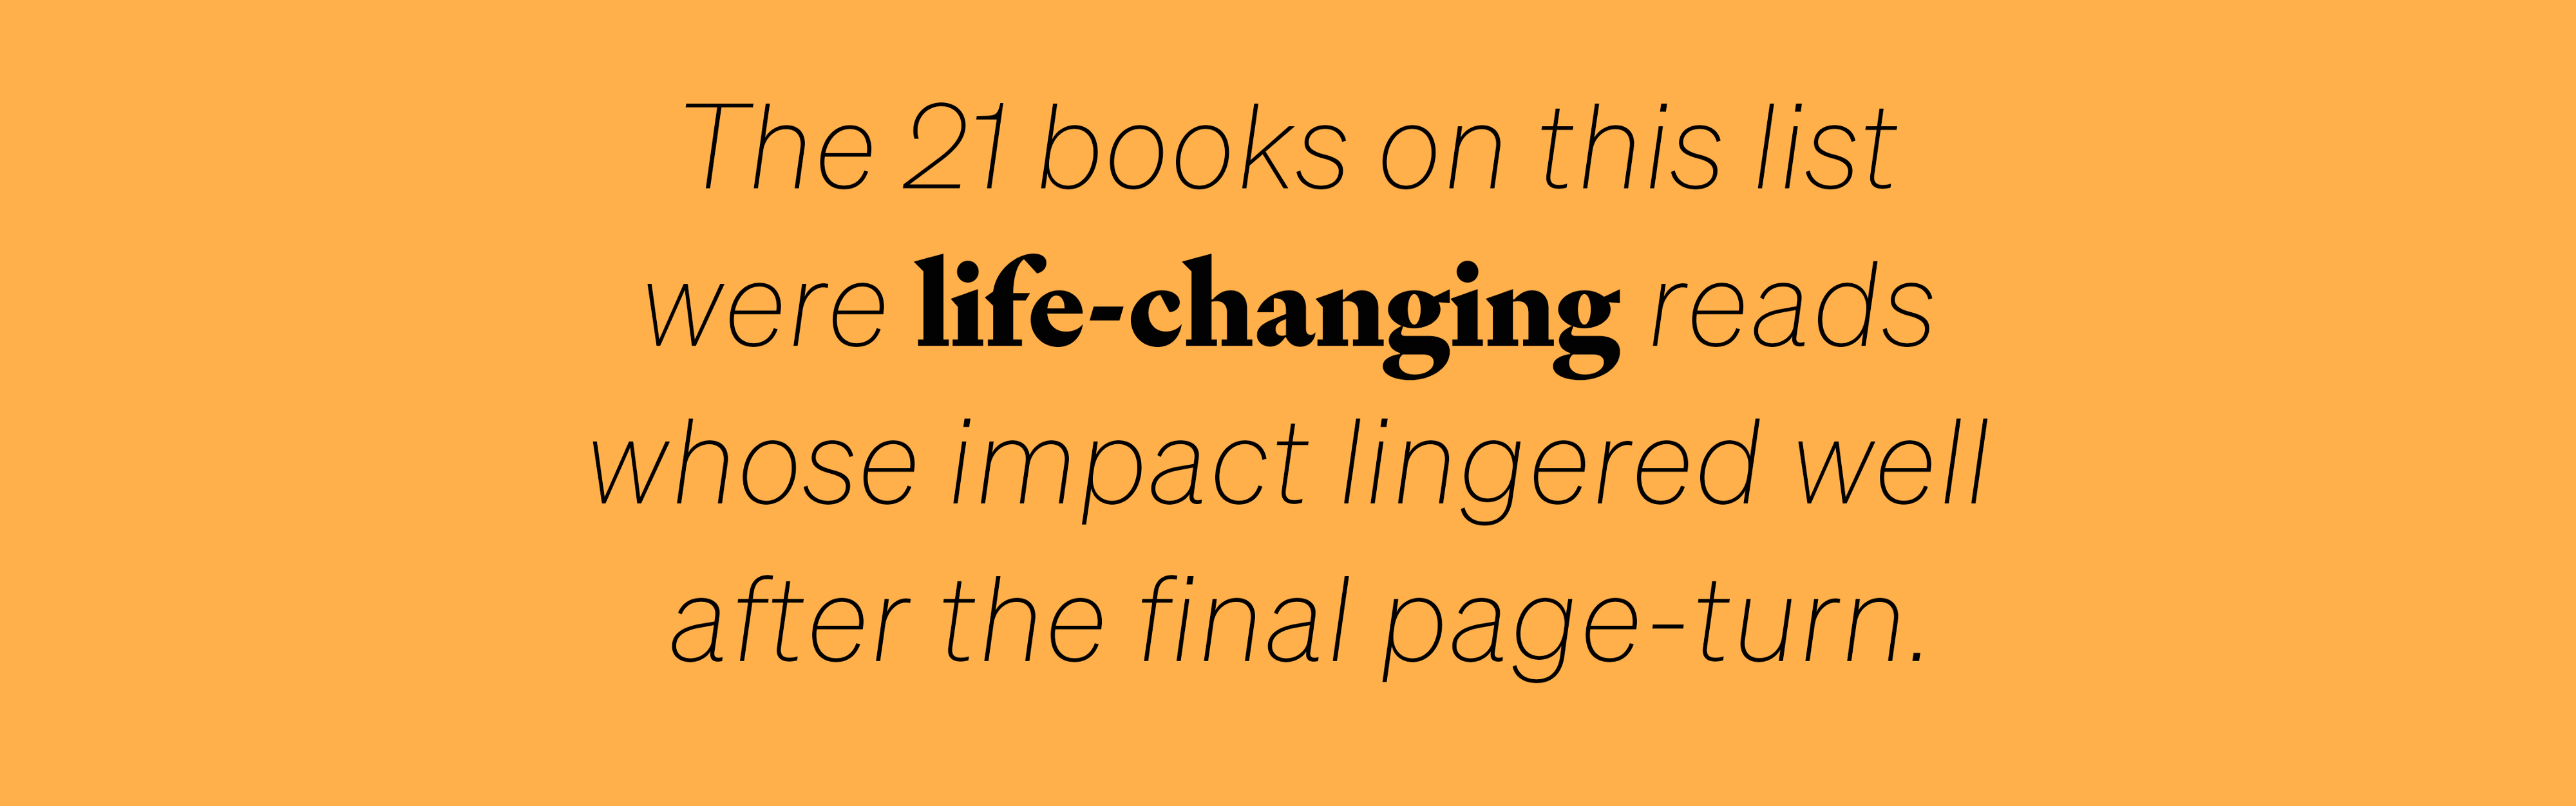 The 21 books on this list were life-changing reads whose impact lingered well after the final page-turn.